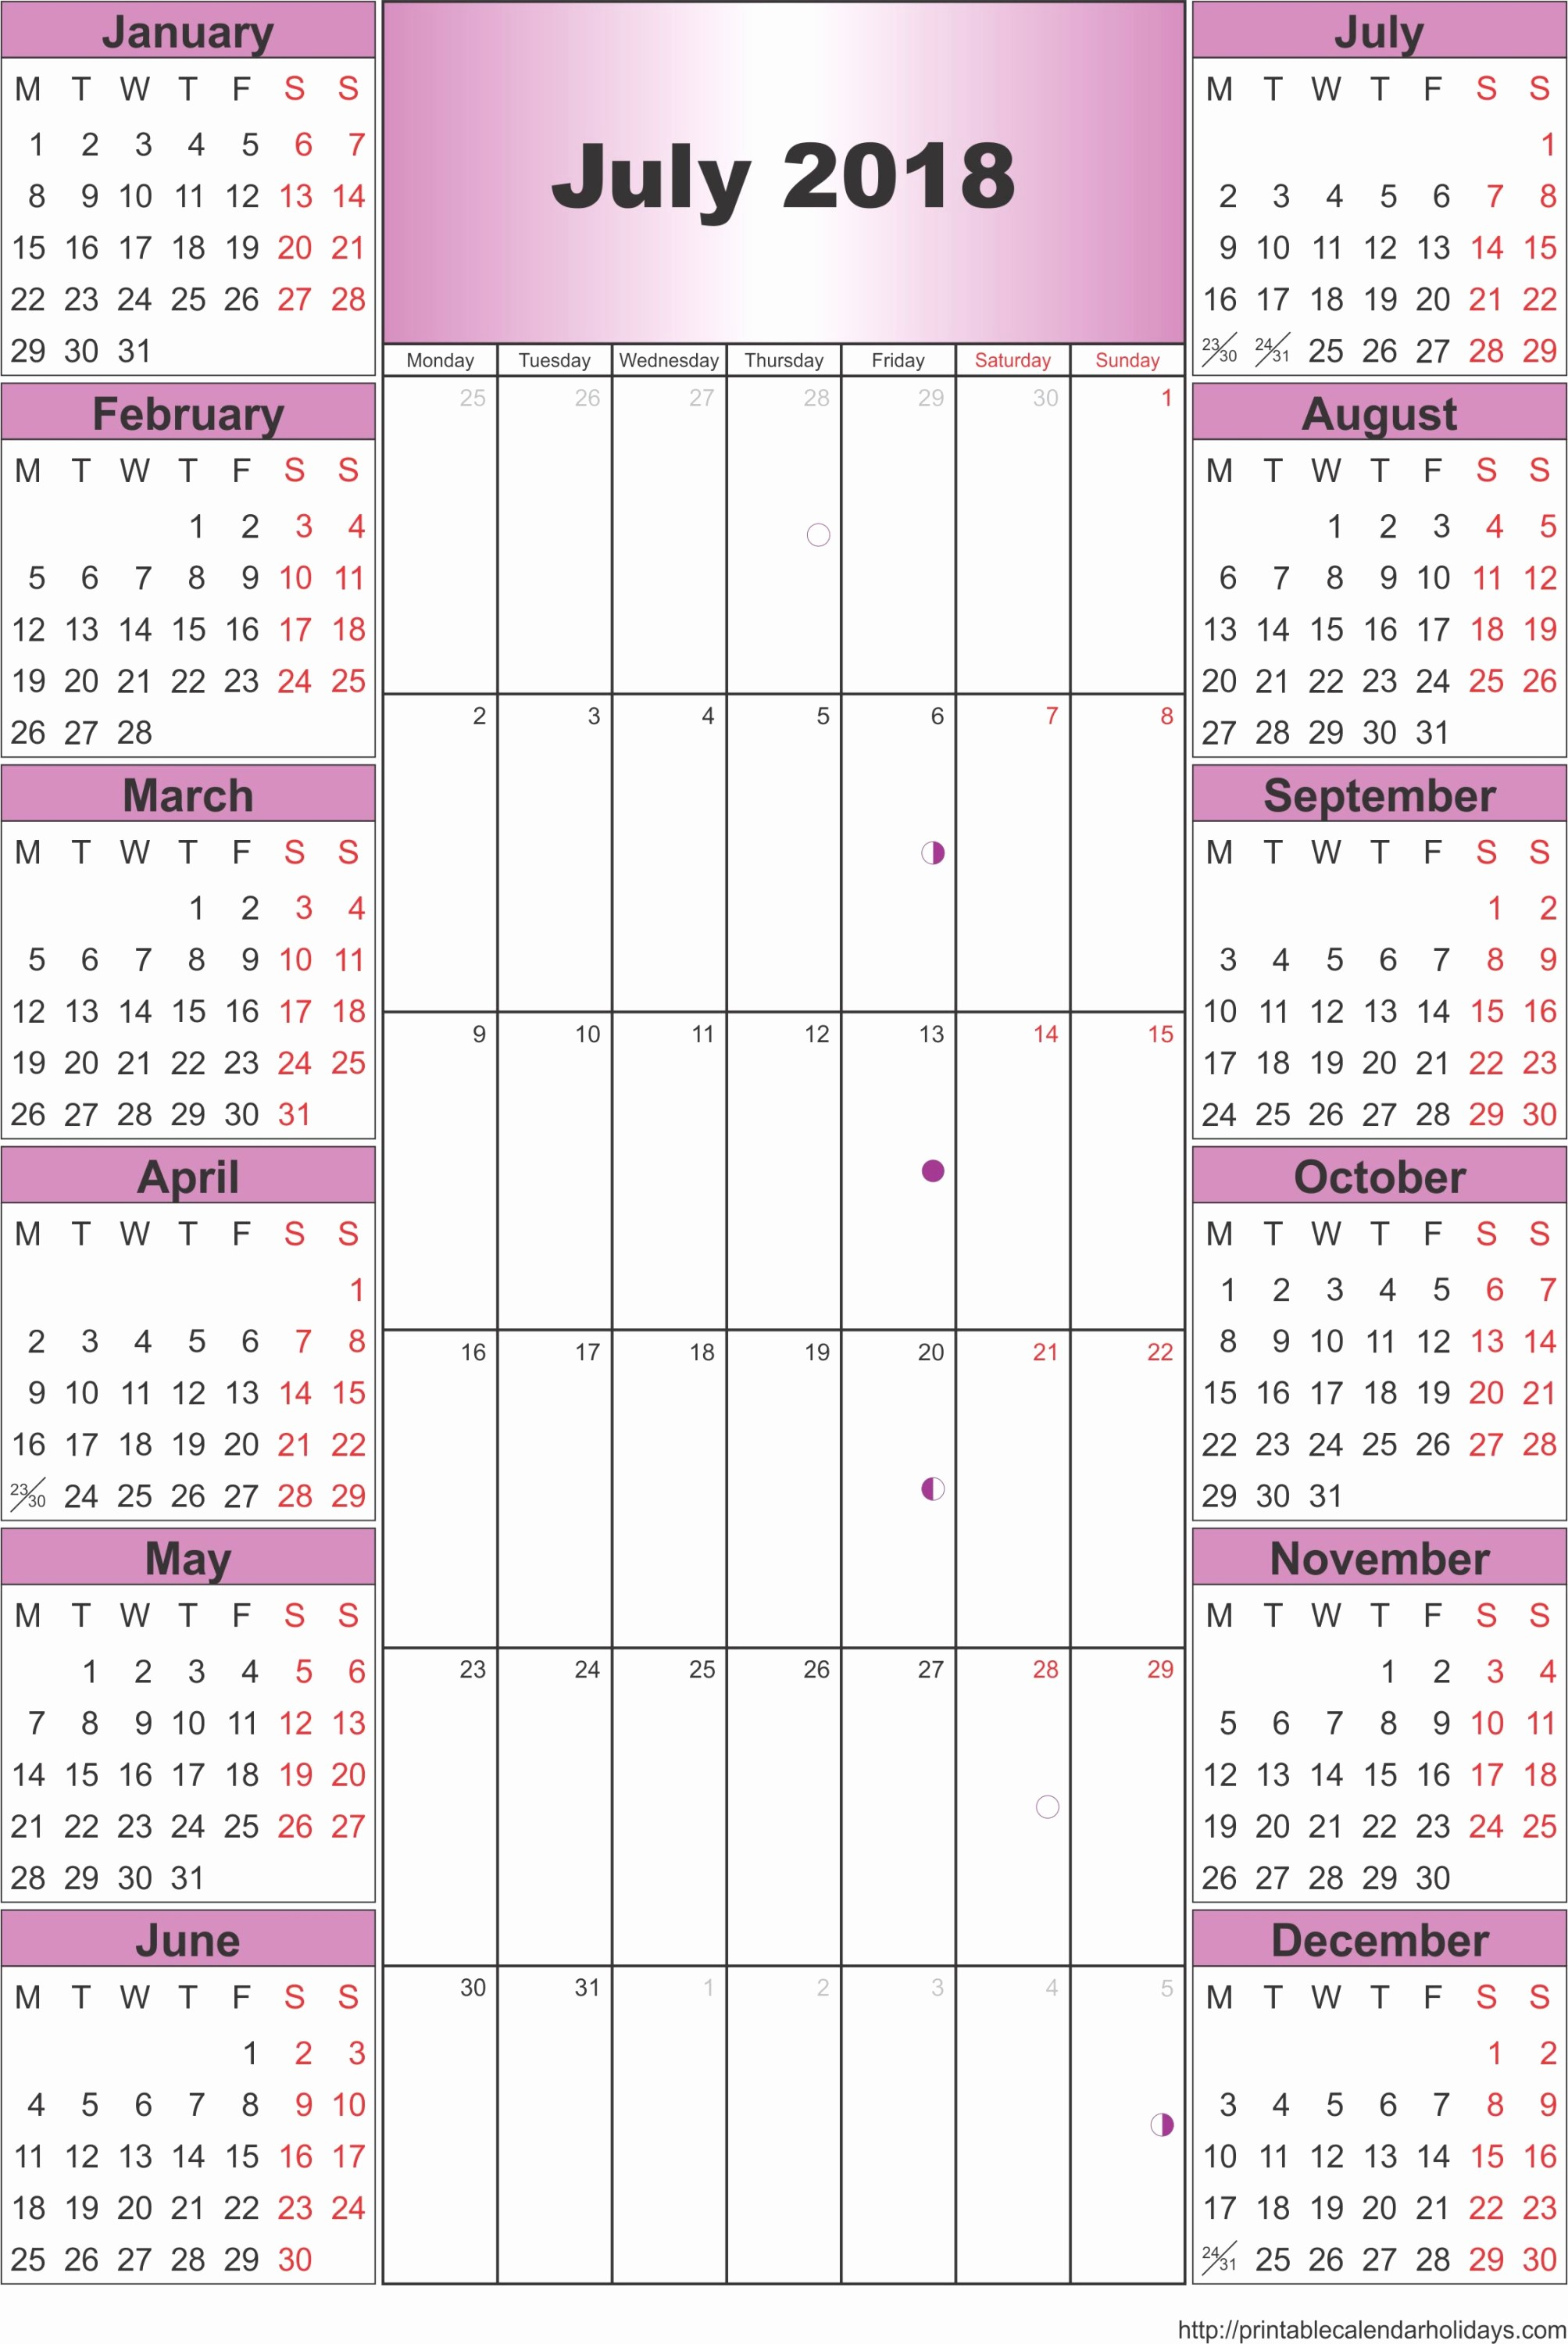 Calendar 2016 Printable with Holidays Best Of July 2018 Archives Free Printable Calendar 2016 2017